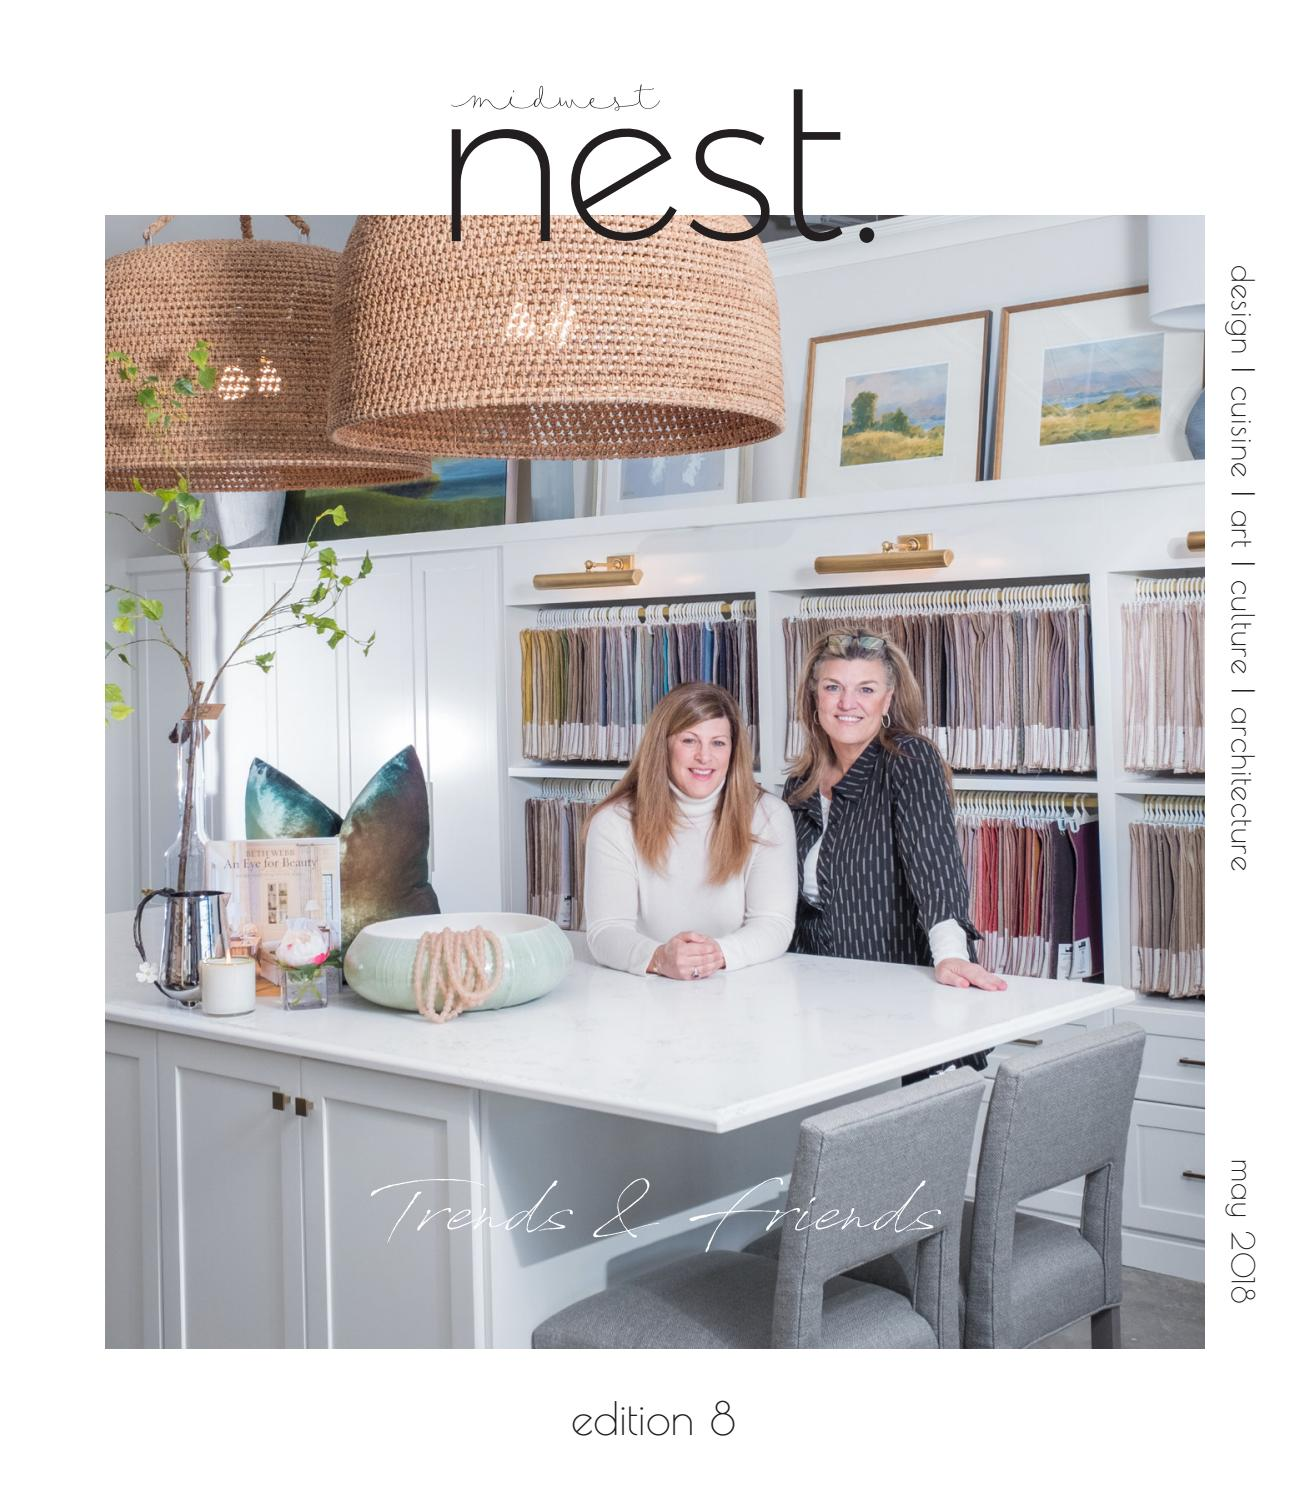 catalogs for home decor elegant home decor creative home.htm midwest nest edition 8 may 2018 by midwest nest magazine issuu  midwest nest edition 8 may 2018 by